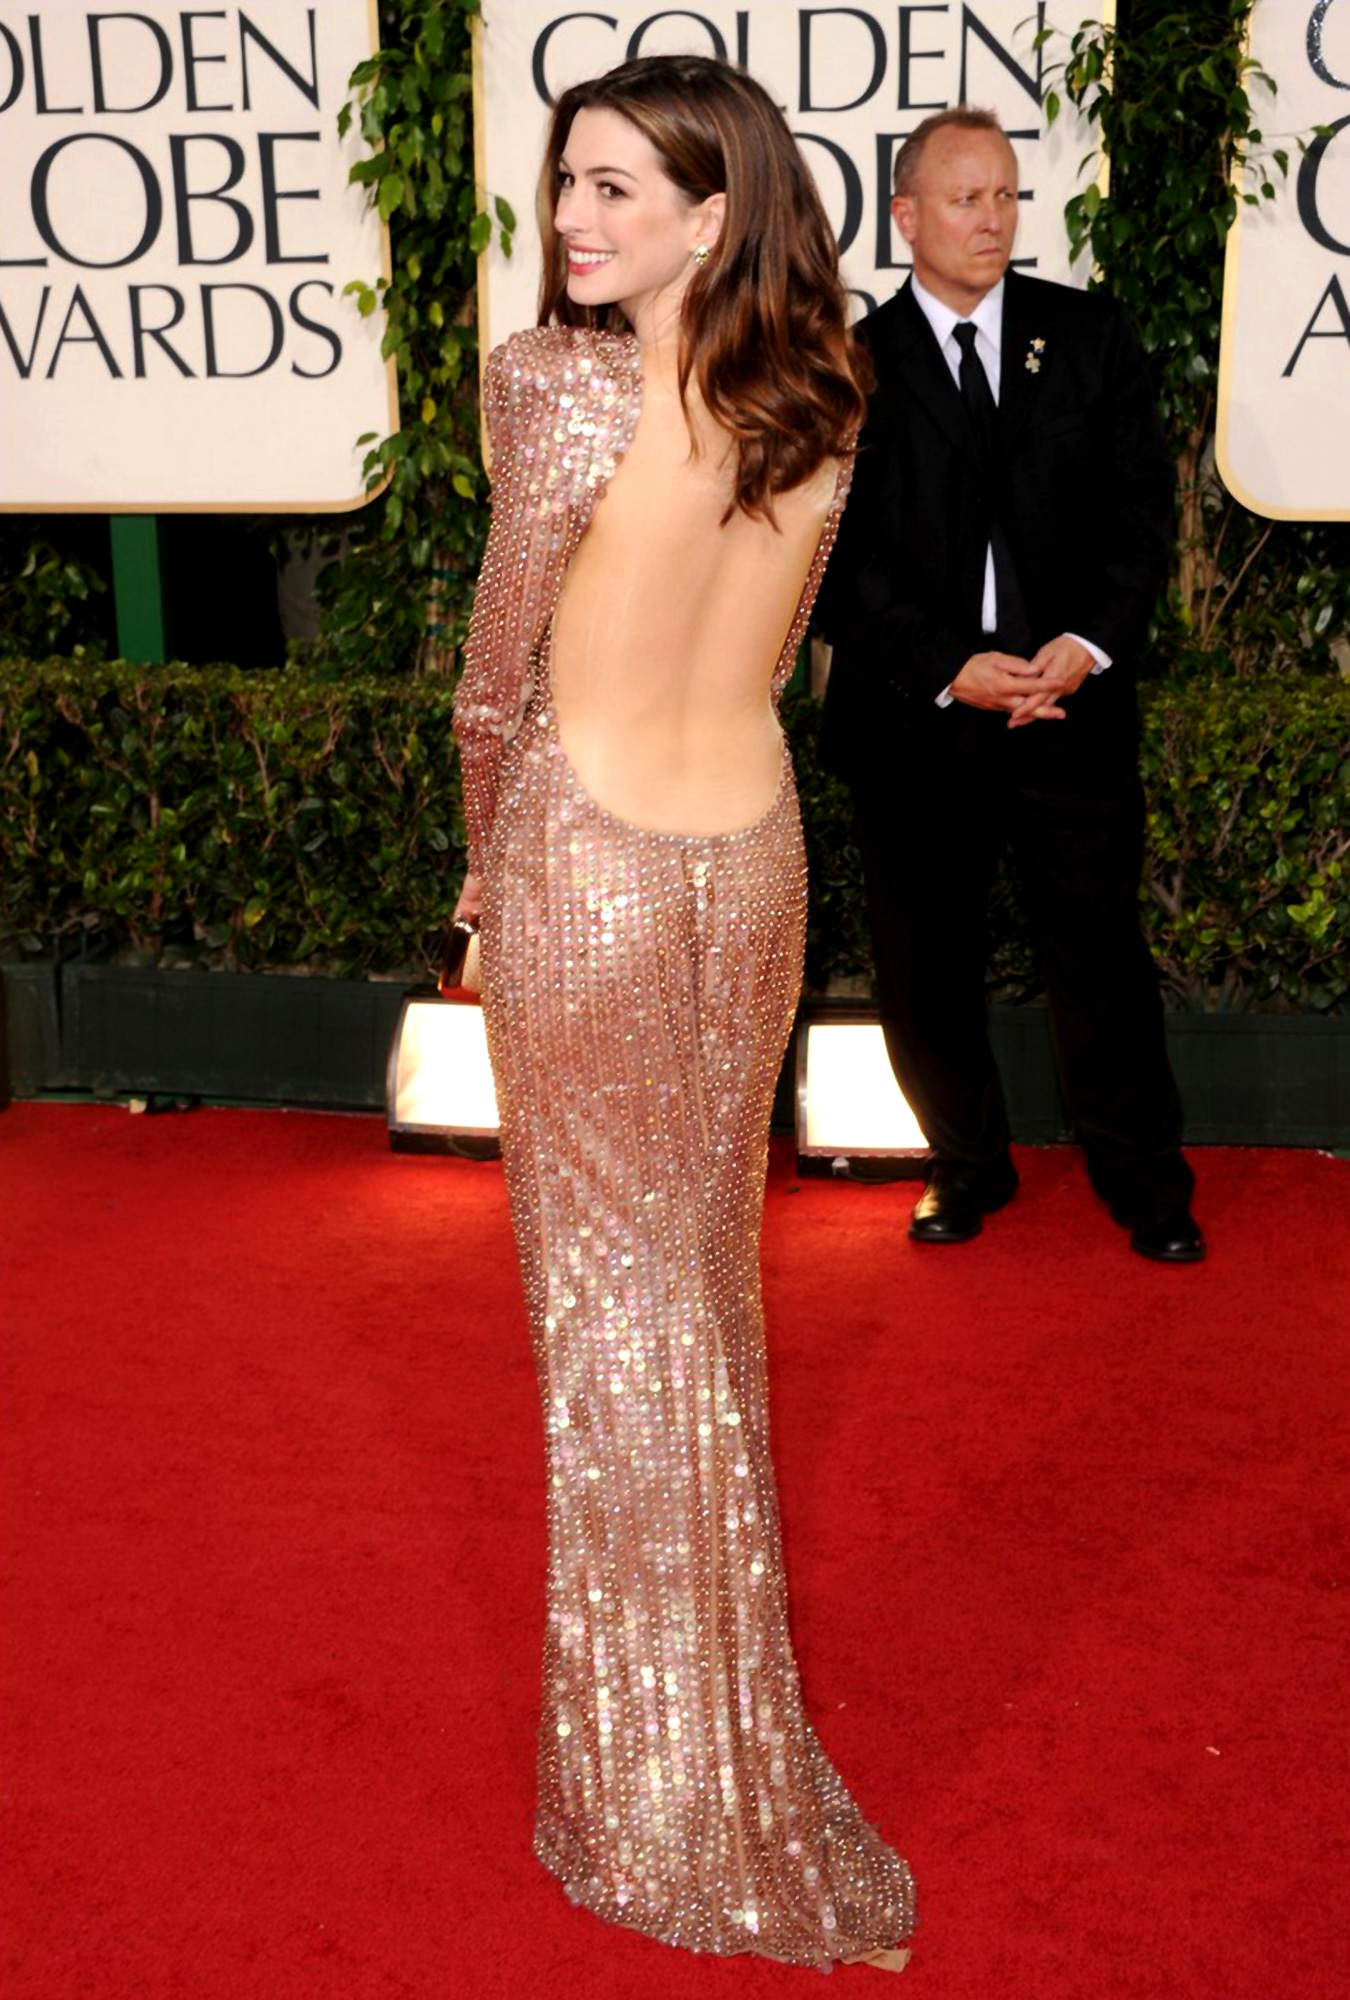 82143_Anne_Hathaway_at_68th_Annual_Golden_Globe_Awards8_122_67lo.jpg